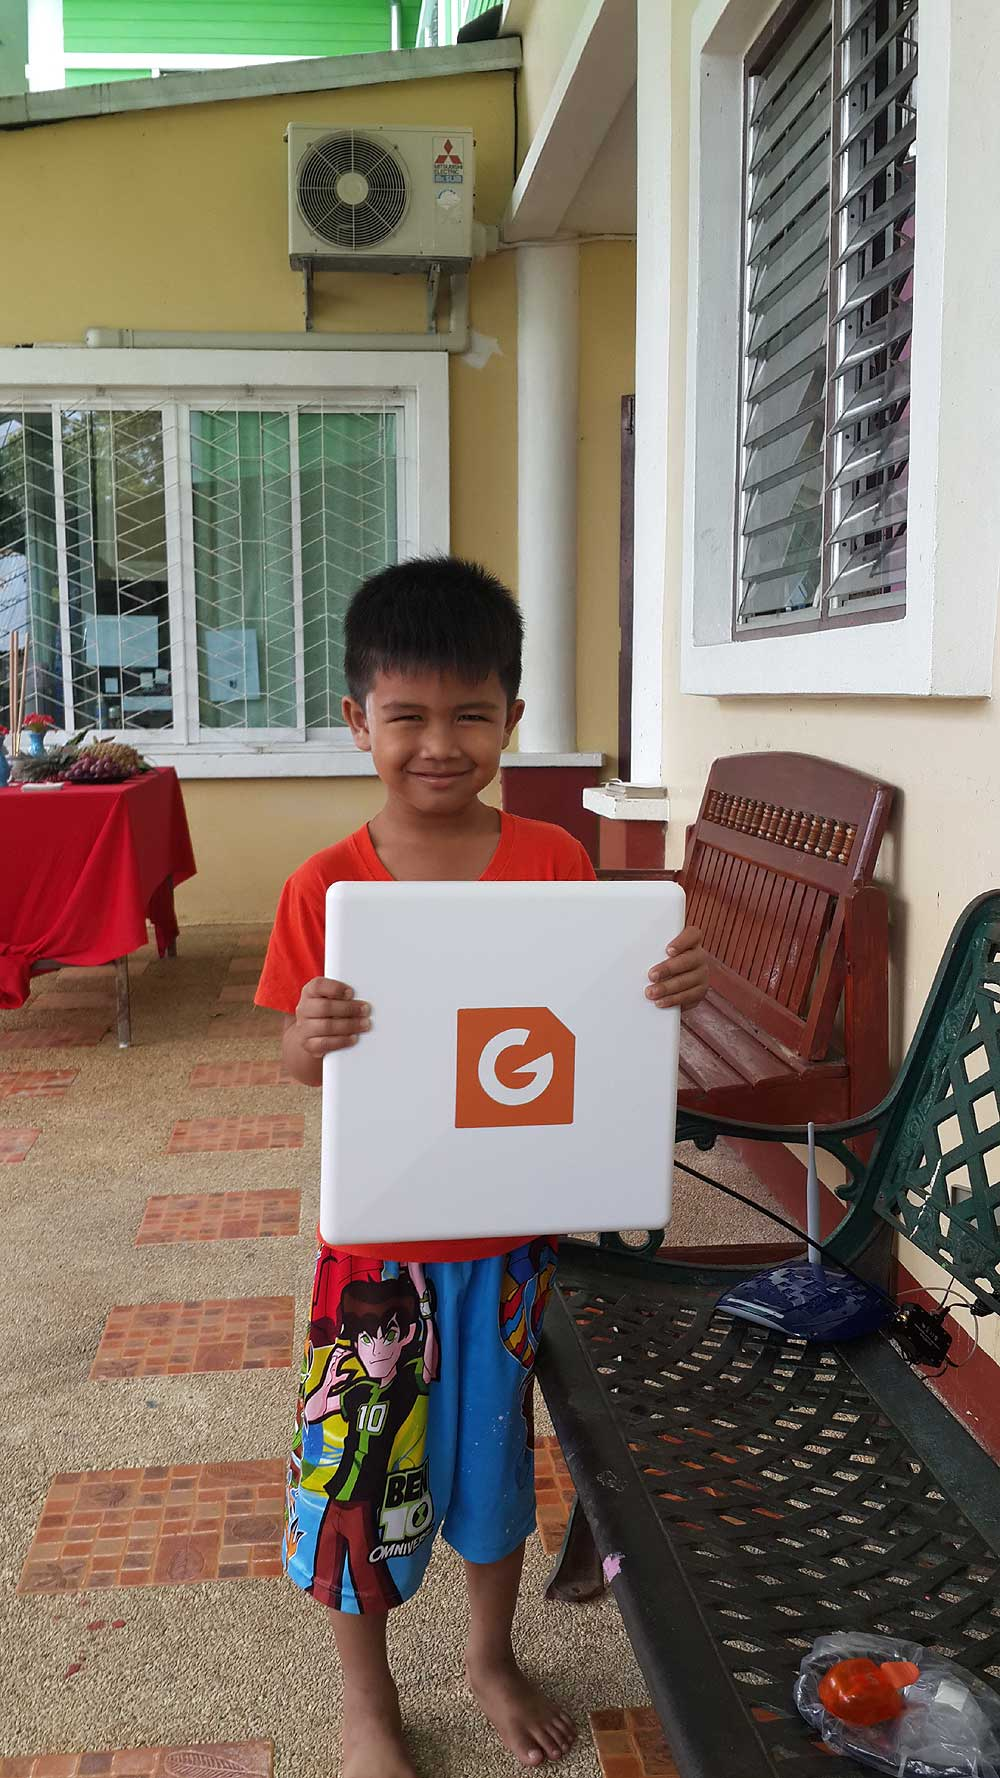 G Spotter Maxi Gain WiFi antennas helping set up a large WiFi area at Baan Tharn Namchai is an Orphanage